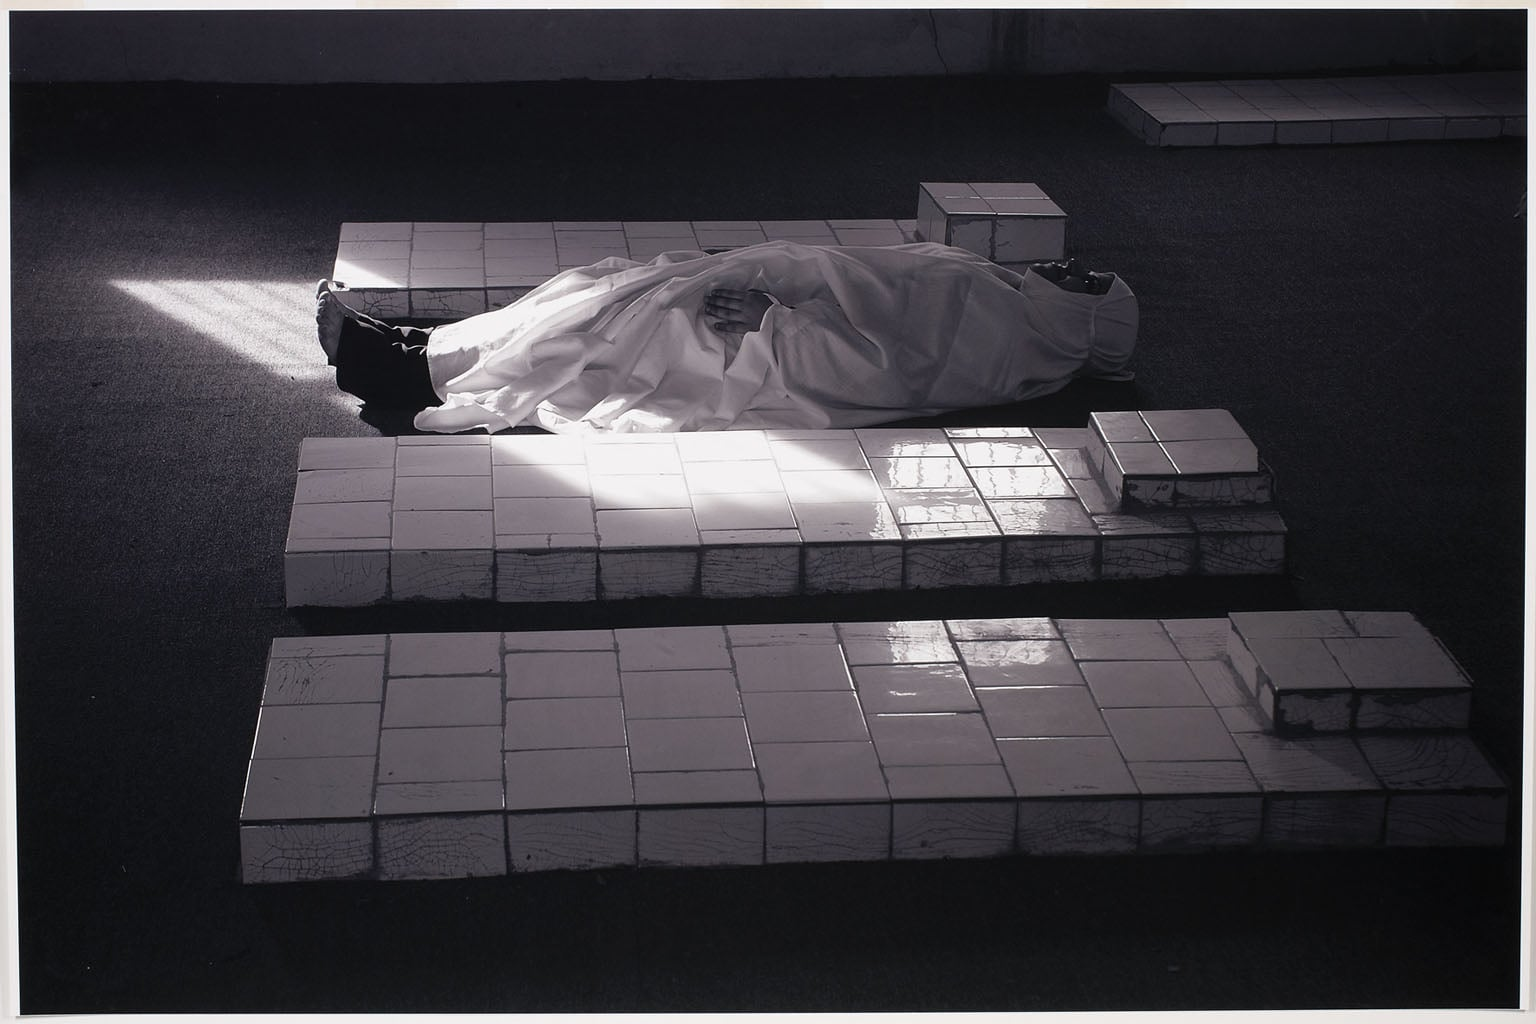 Prints from the 'Light' series (Art Fund Collection of Middle Eastern Photography)